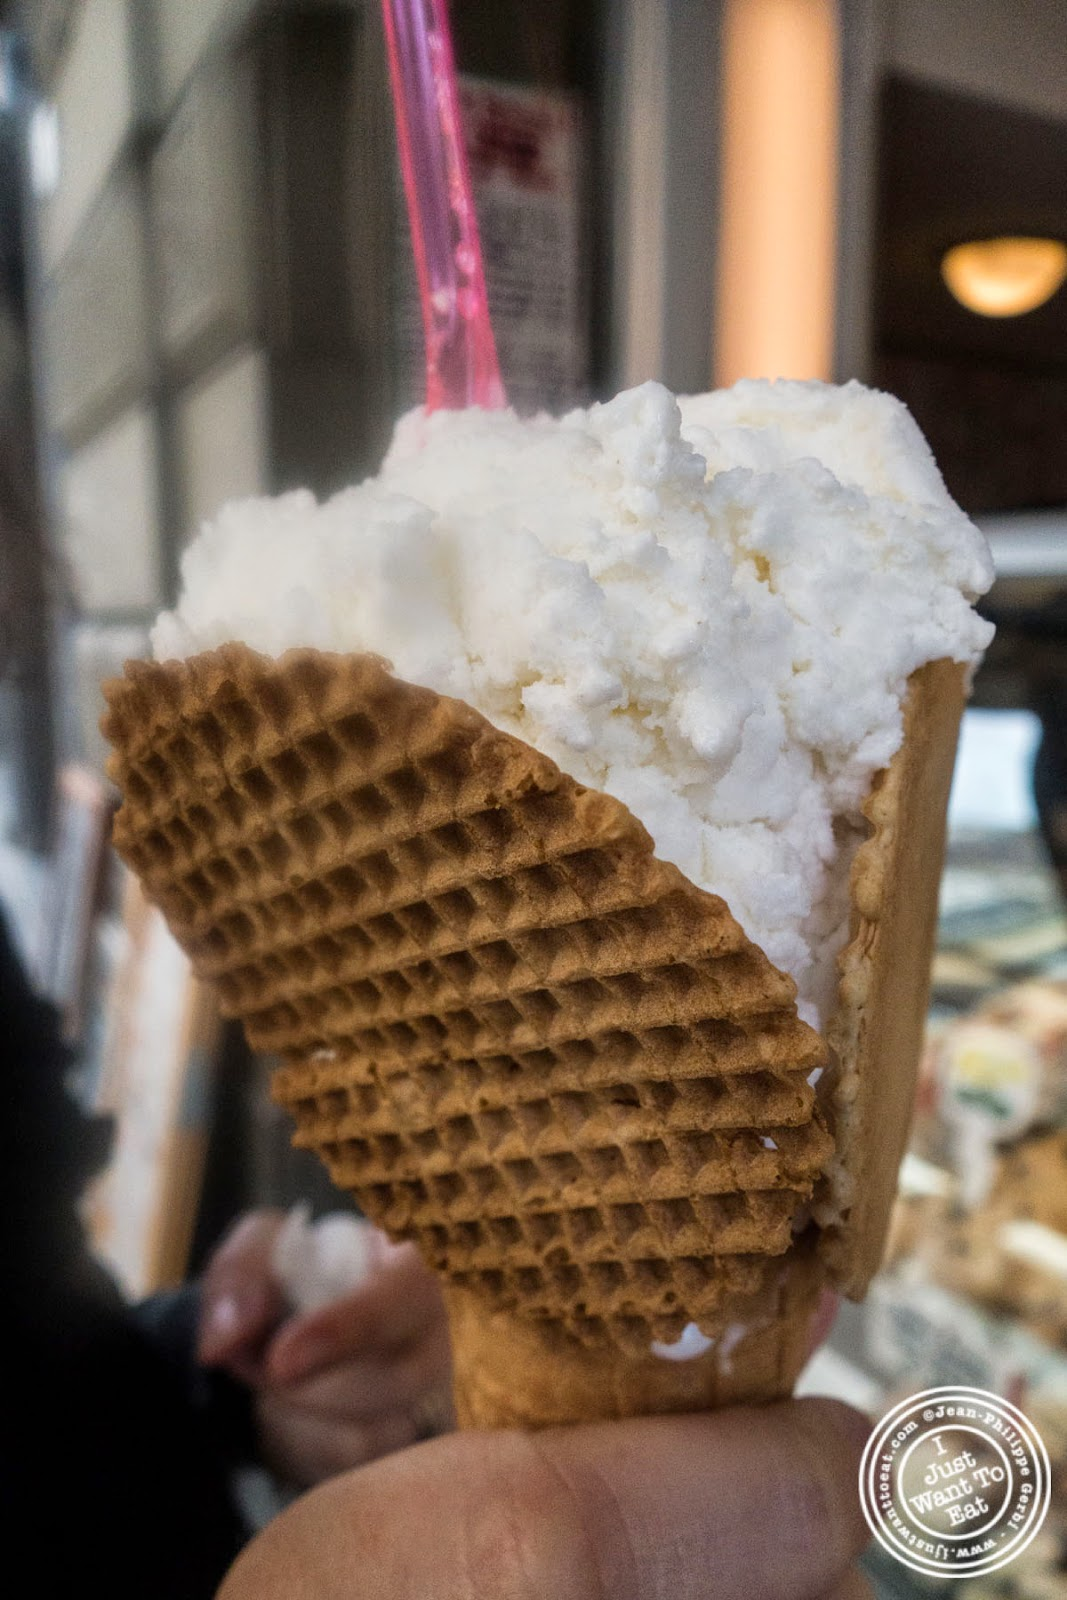 coconut gelato at Caffè Del Battistero in Florence, Italy